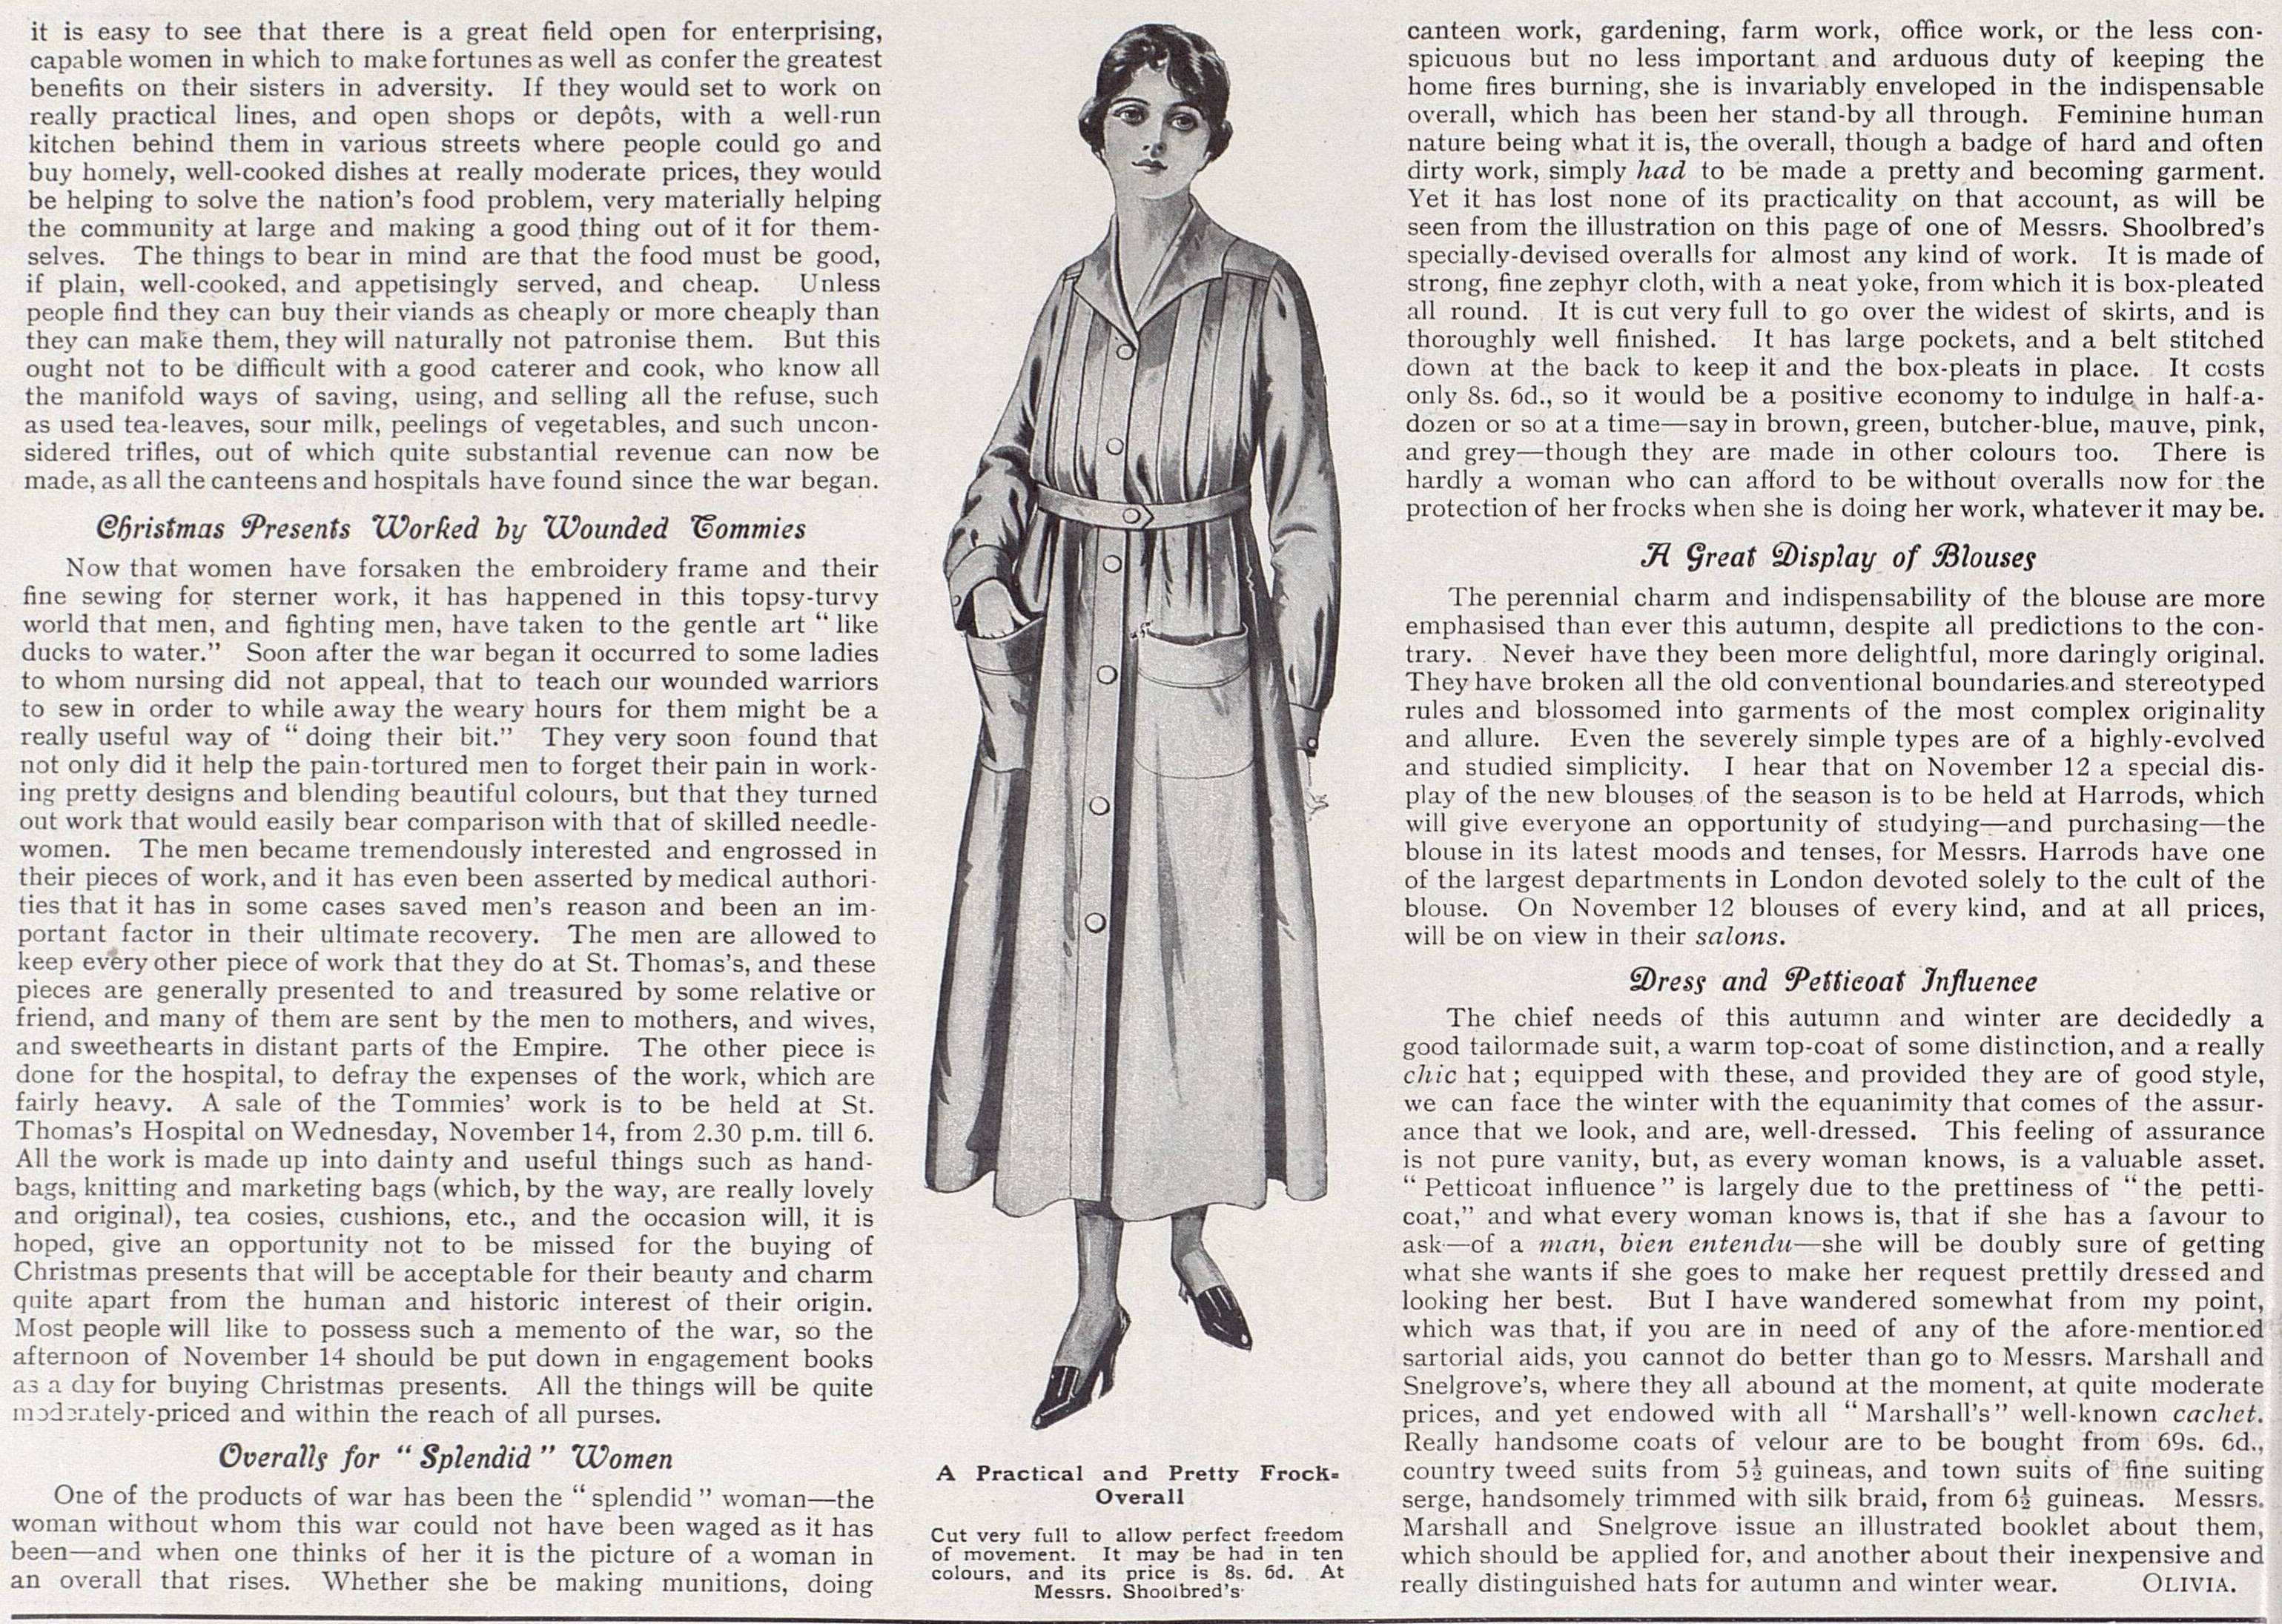 WomansSphereInWarTime_10Nov1917